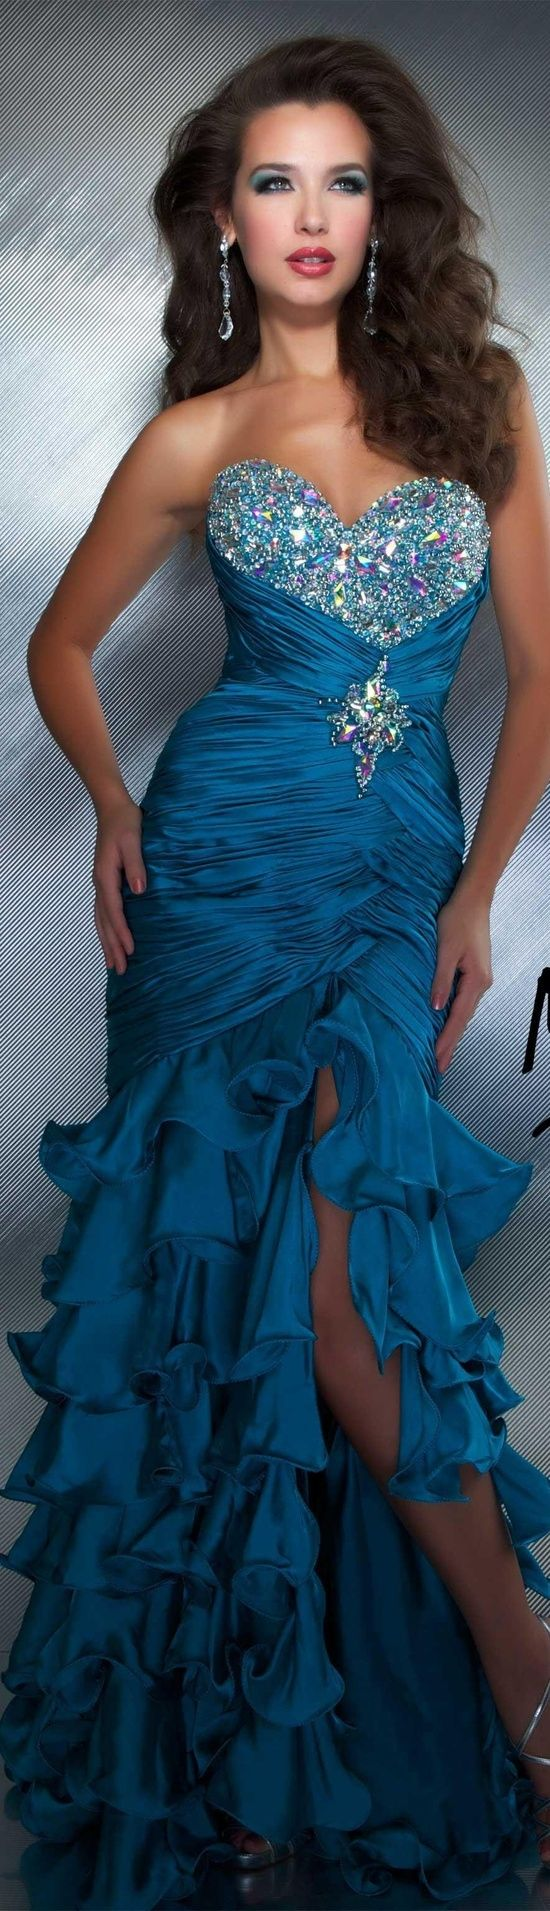 Mac Duggal couture dress teal #strapless #glitter #long #formal  #dress MAC DUGGAL PROM STYLE 4946M by Janny Dangerous